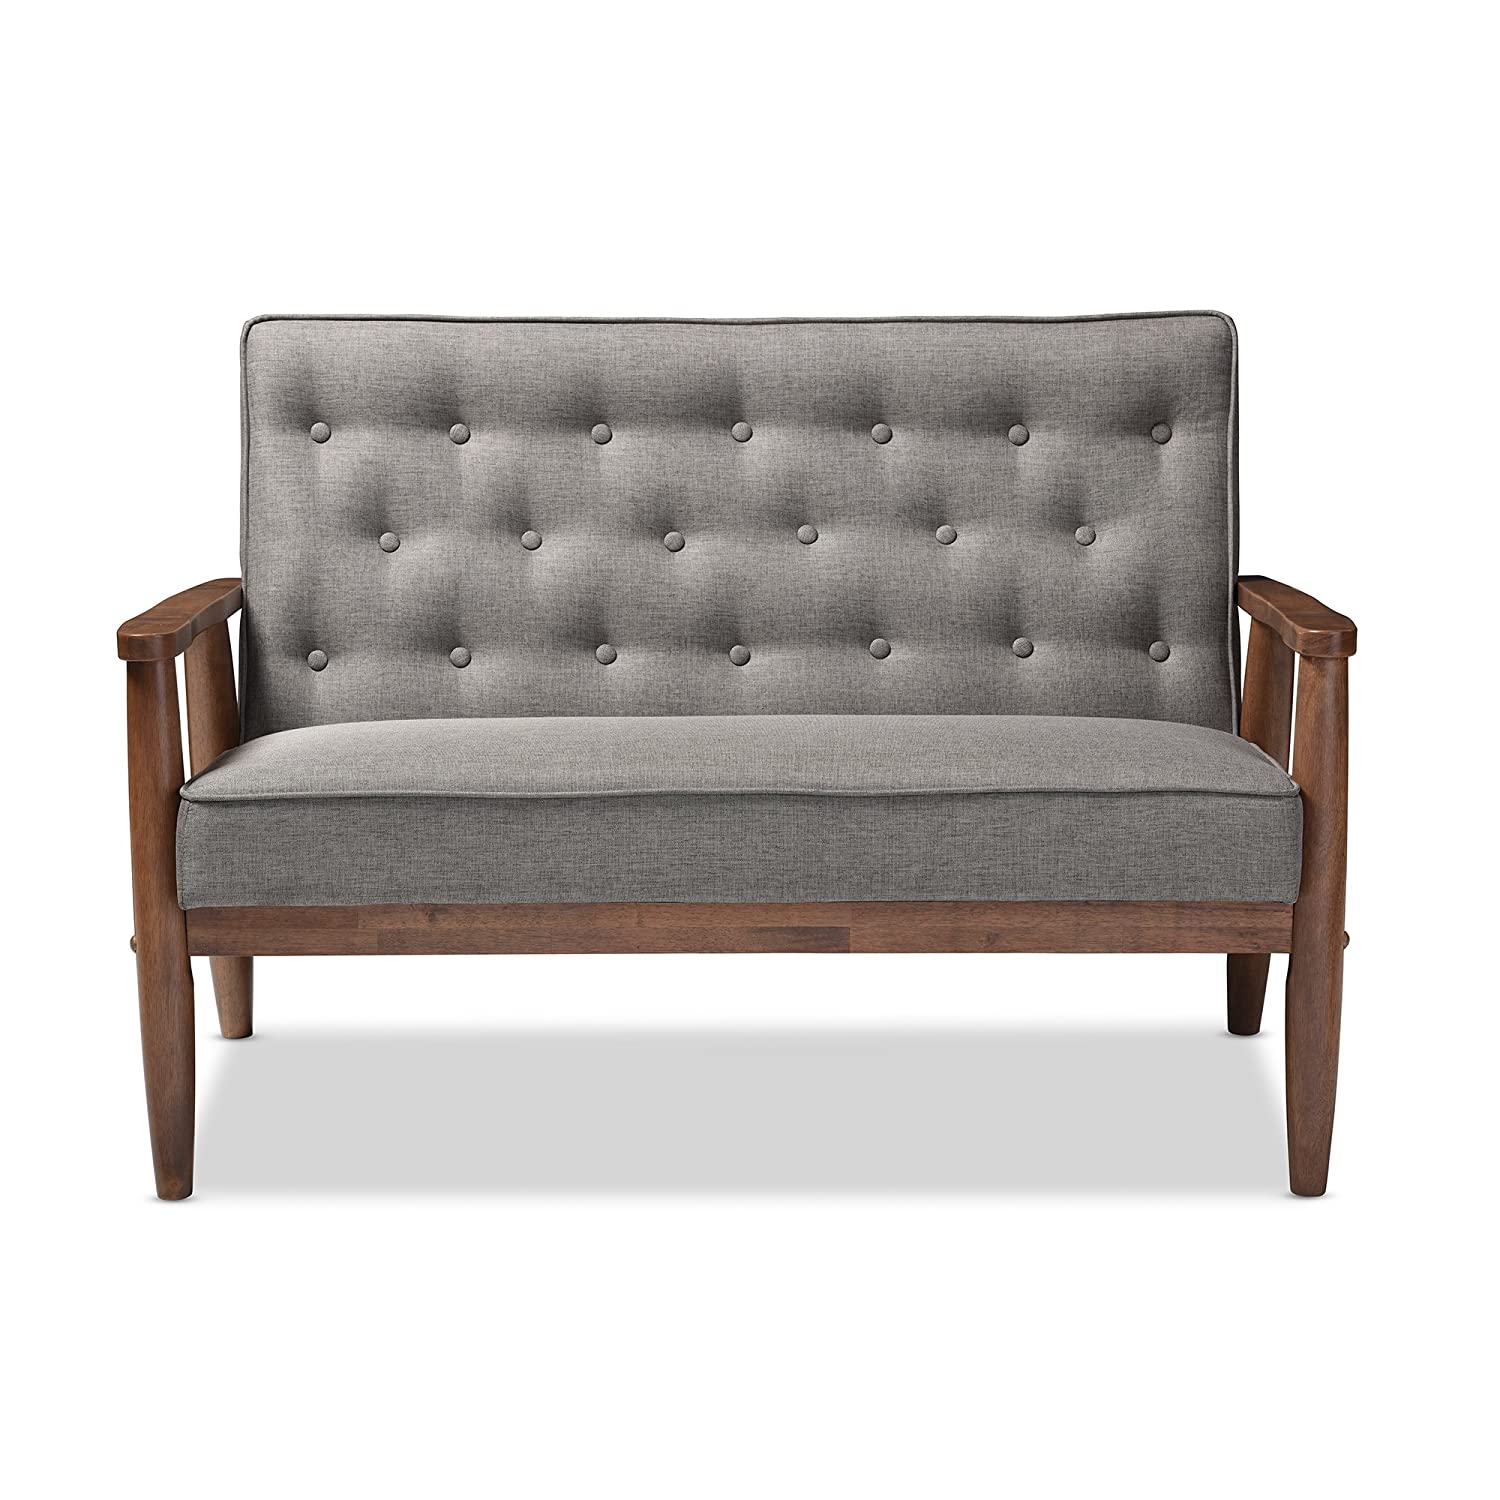 retro luxury furniture of awesome vintage metal patio loveseat